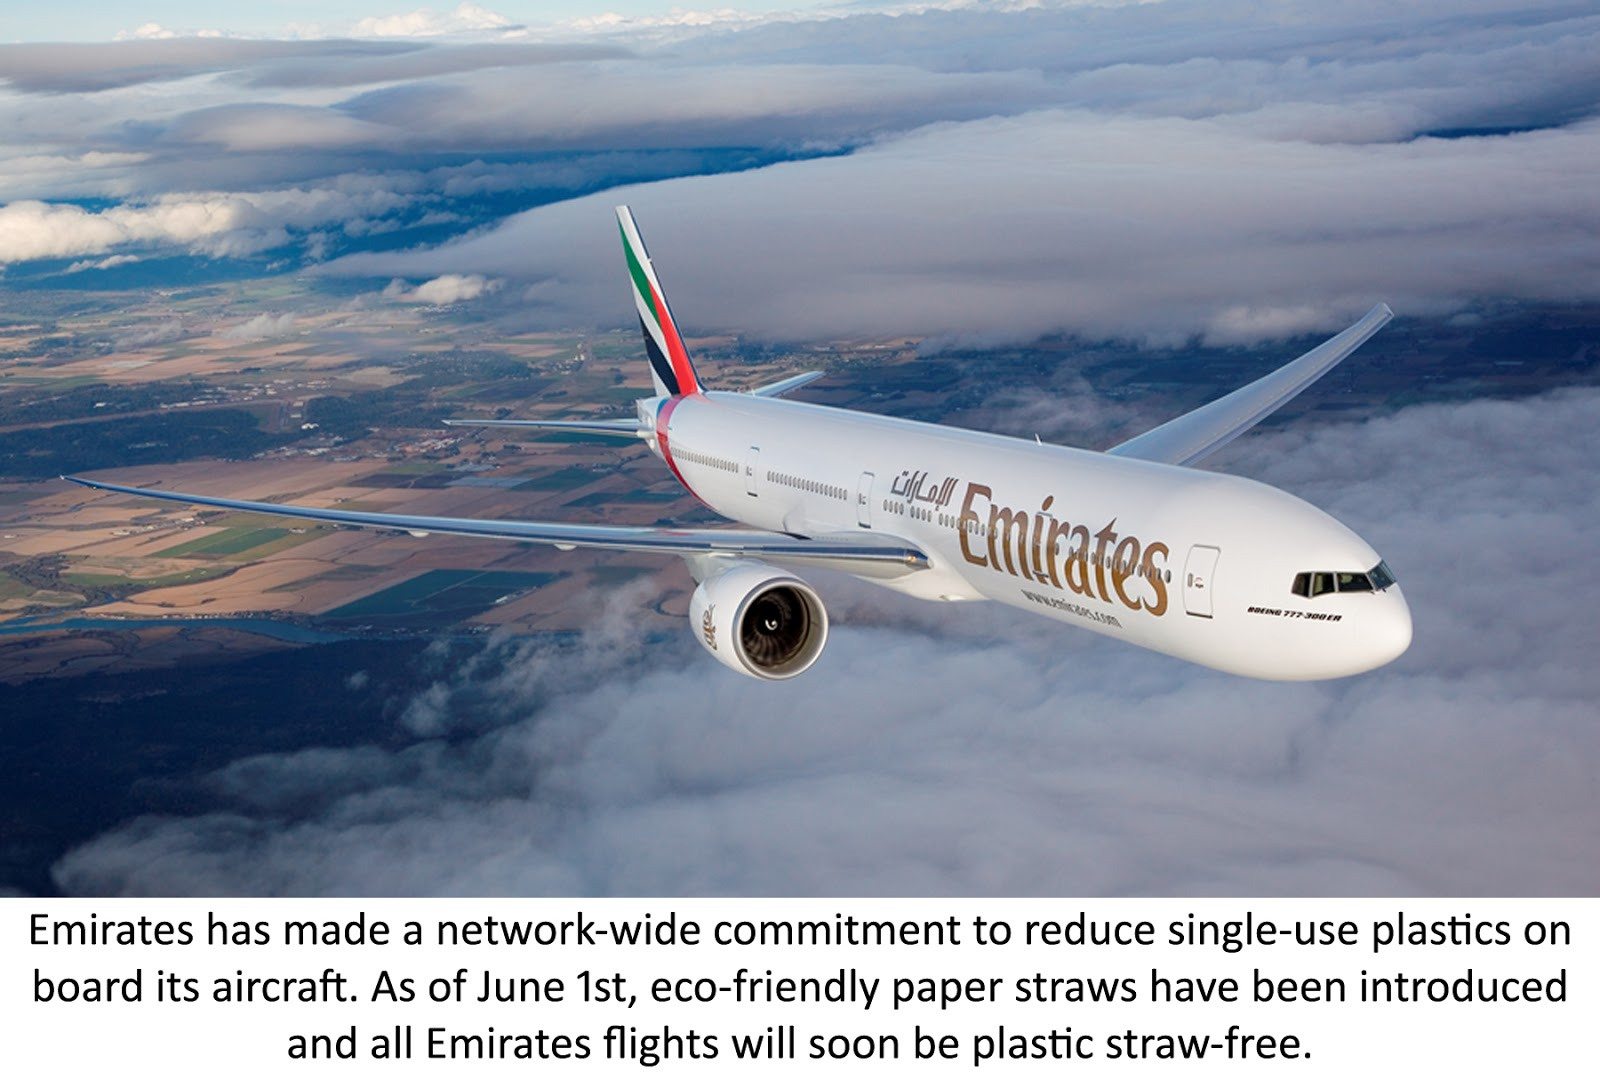 Emirates commits to reducing single-use plastic on board - Eco-friendly paper straws have been introduced this month